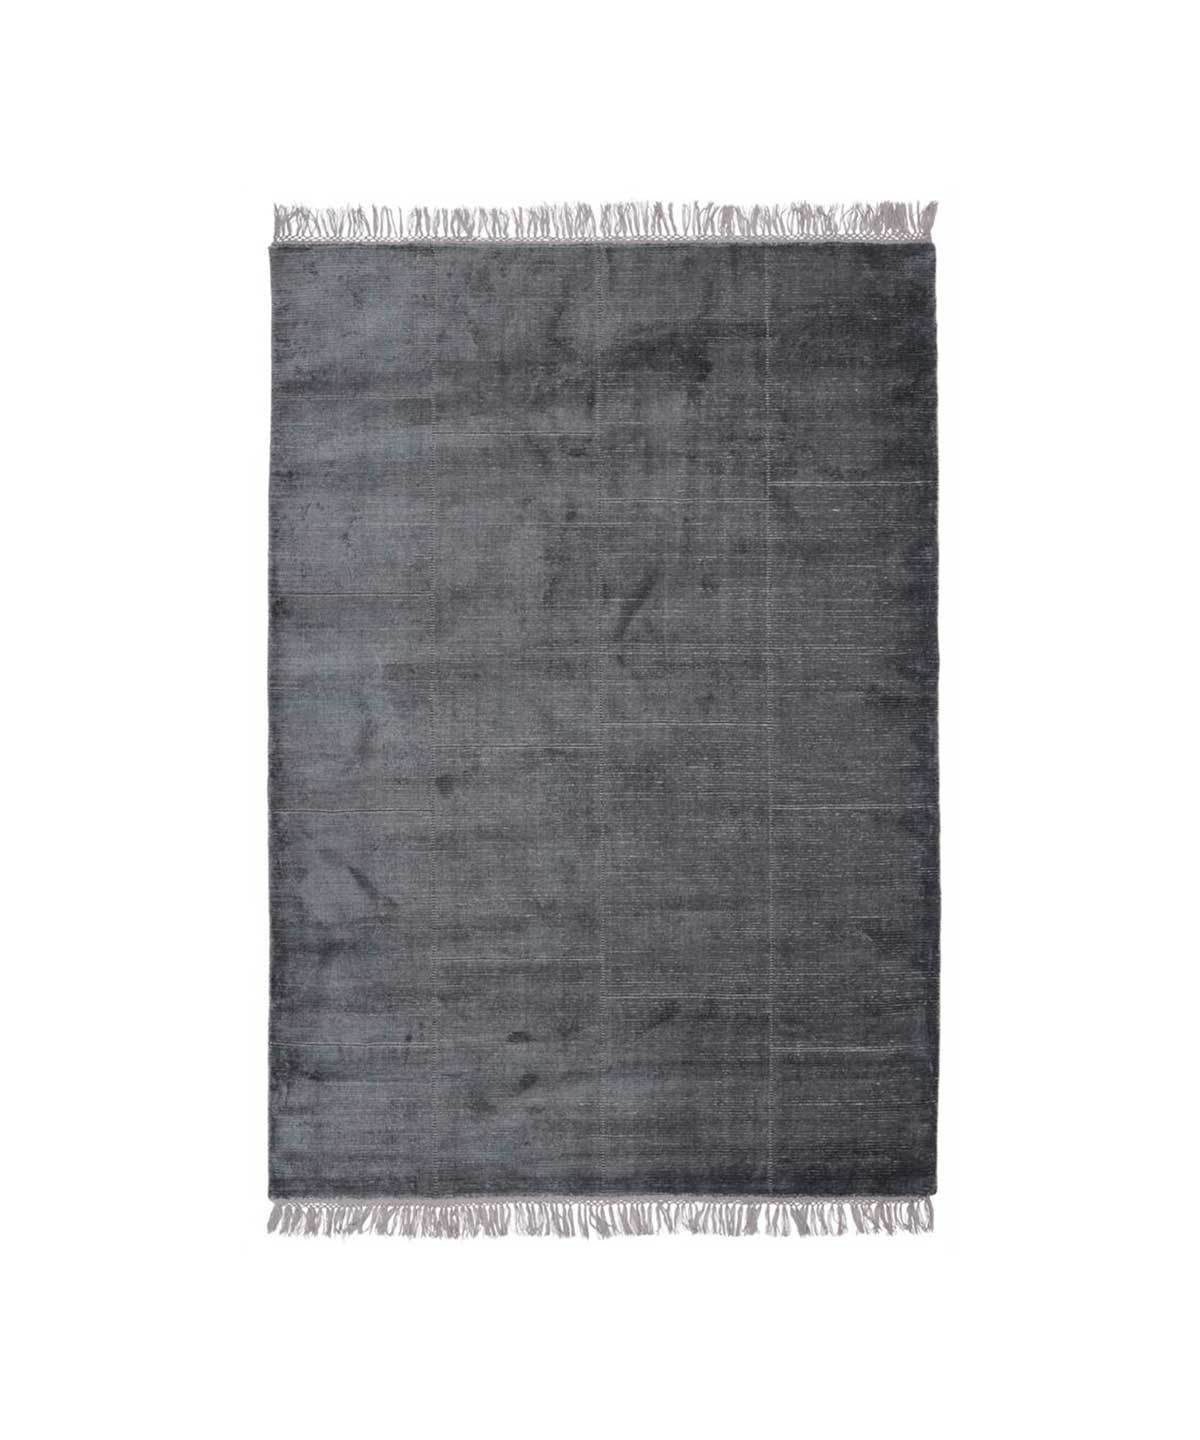 Catania Rug in Dark Blue by Loloi | TRNK